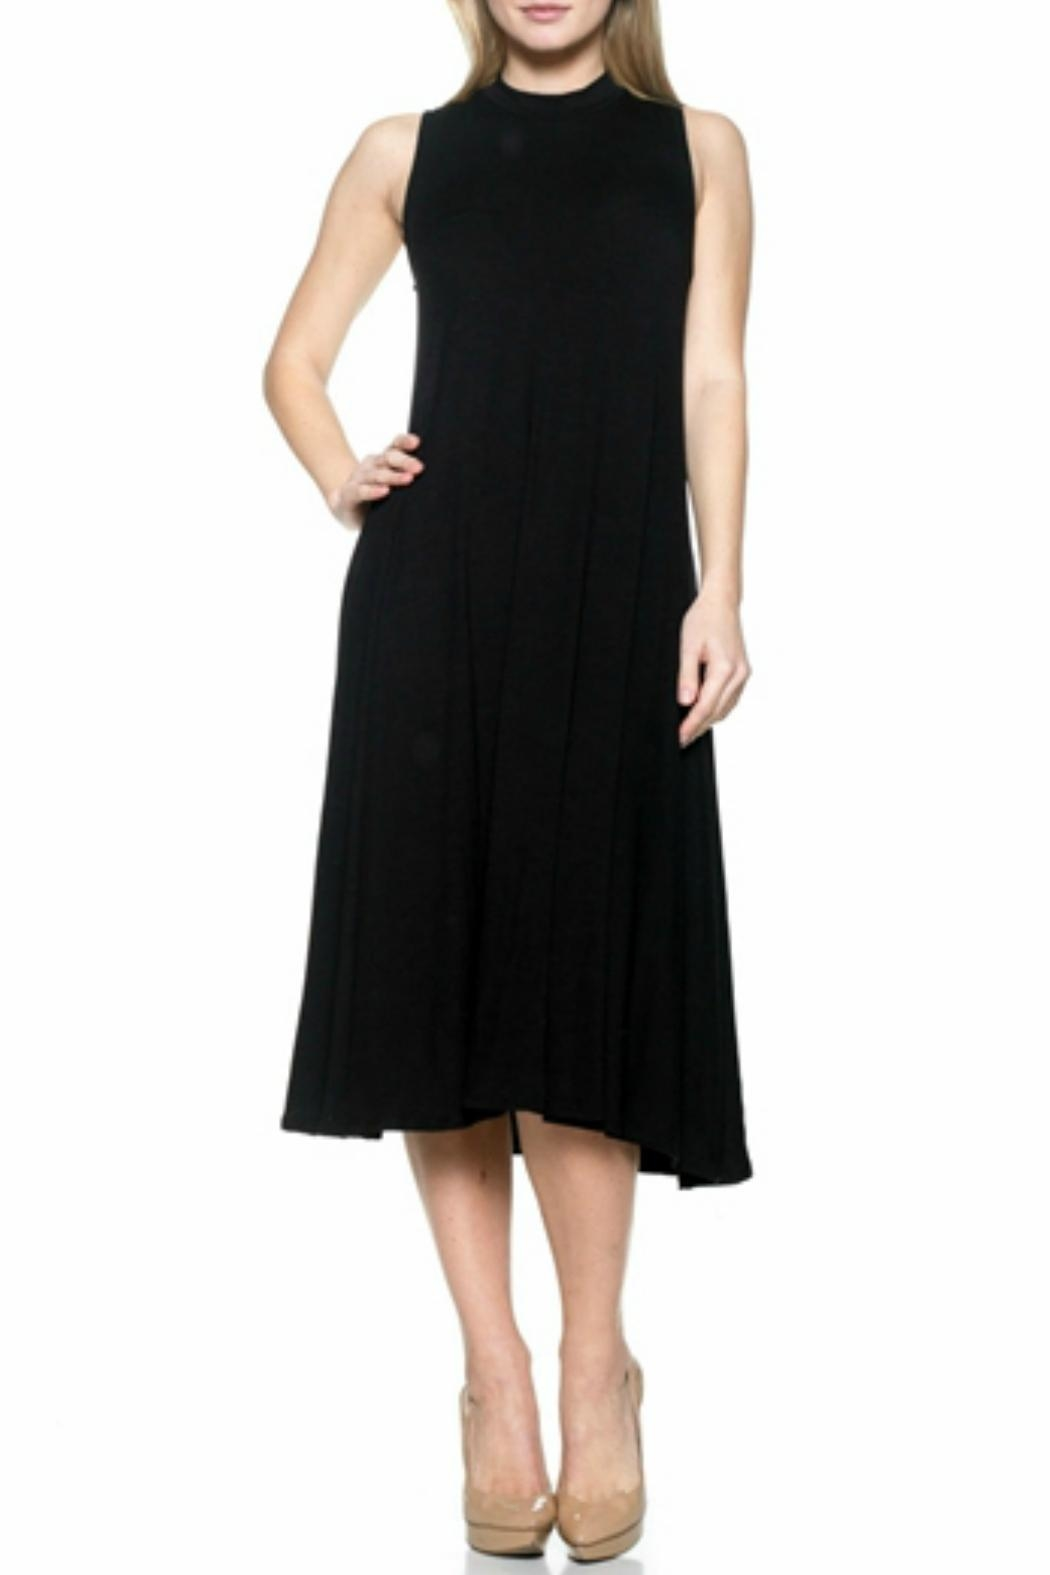 Natasha Couture Fashion Center Stage Pocketed-Dress - Front Cropped Image